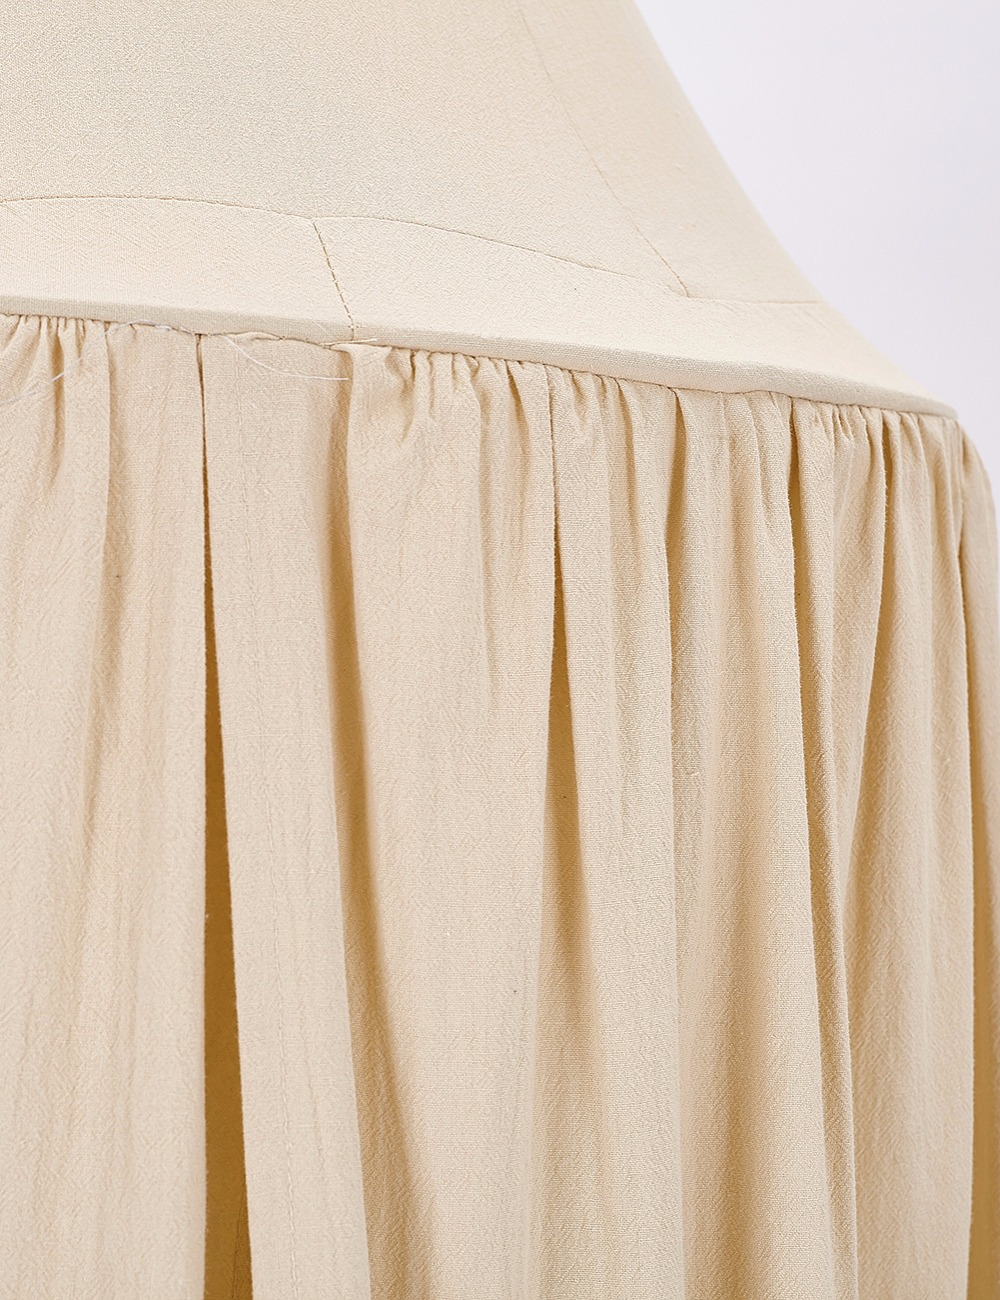 bed canopy (4)